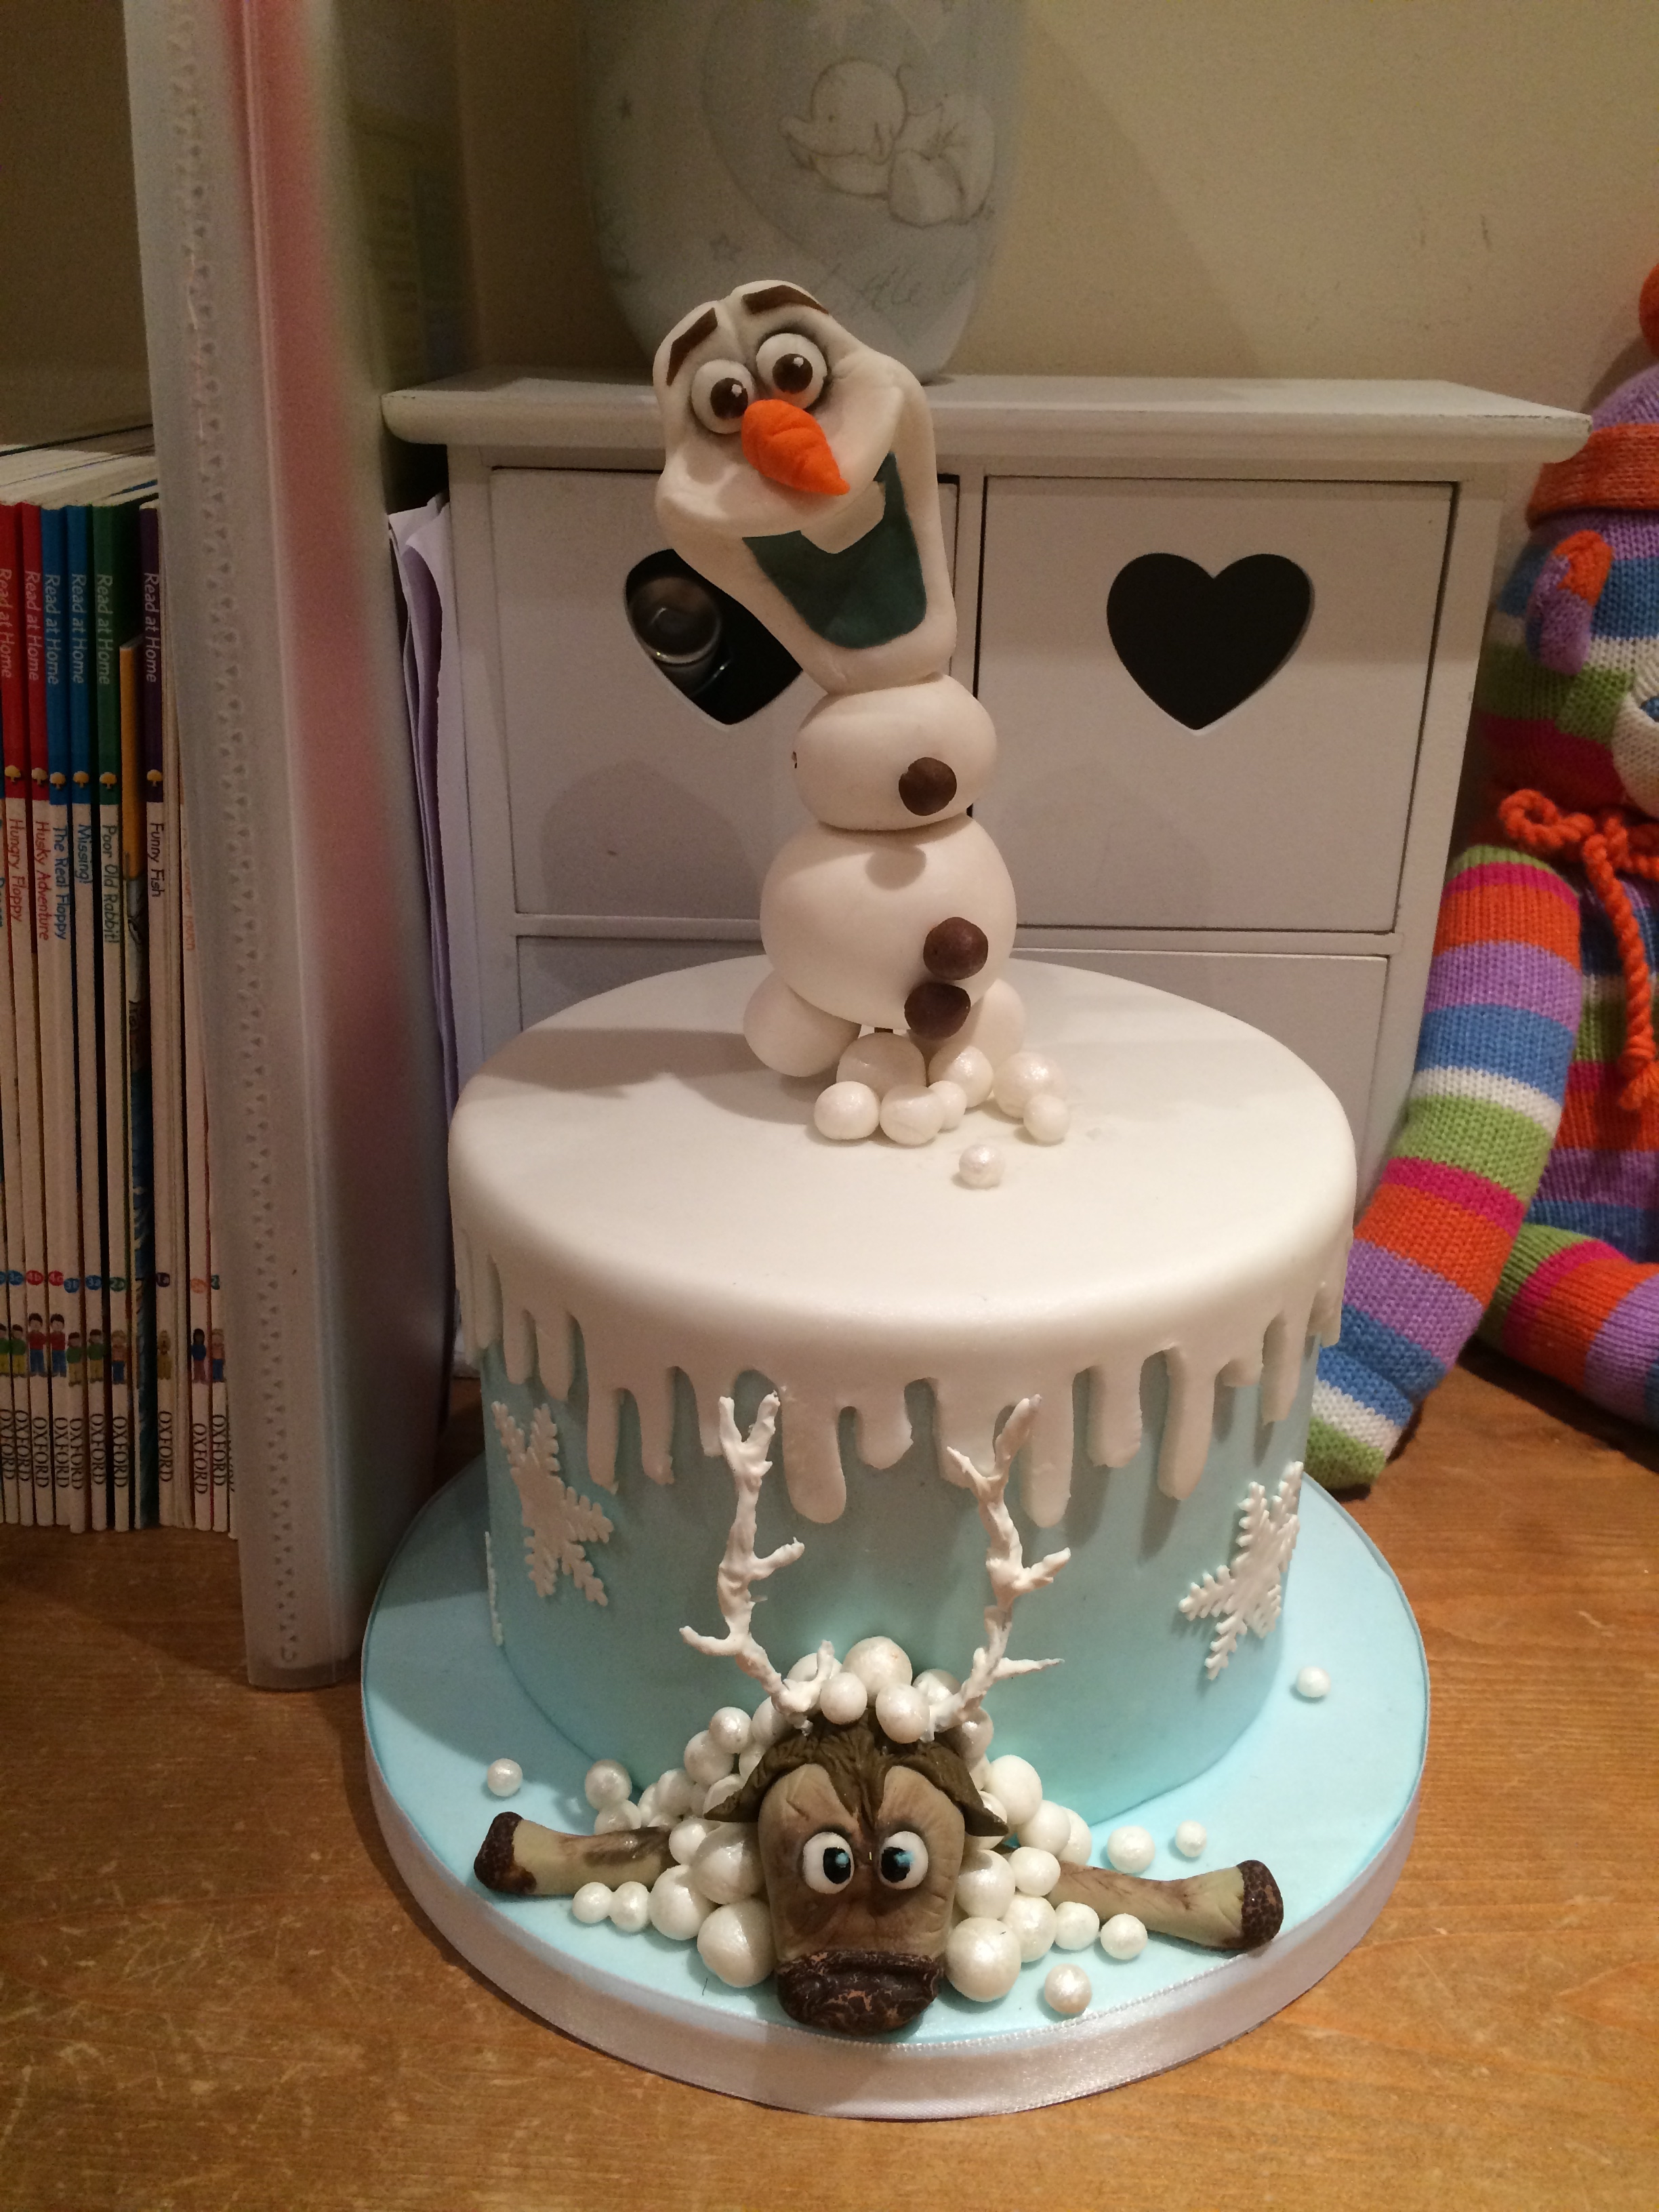 The cake safely arrived and installed in her bedroom back in England!